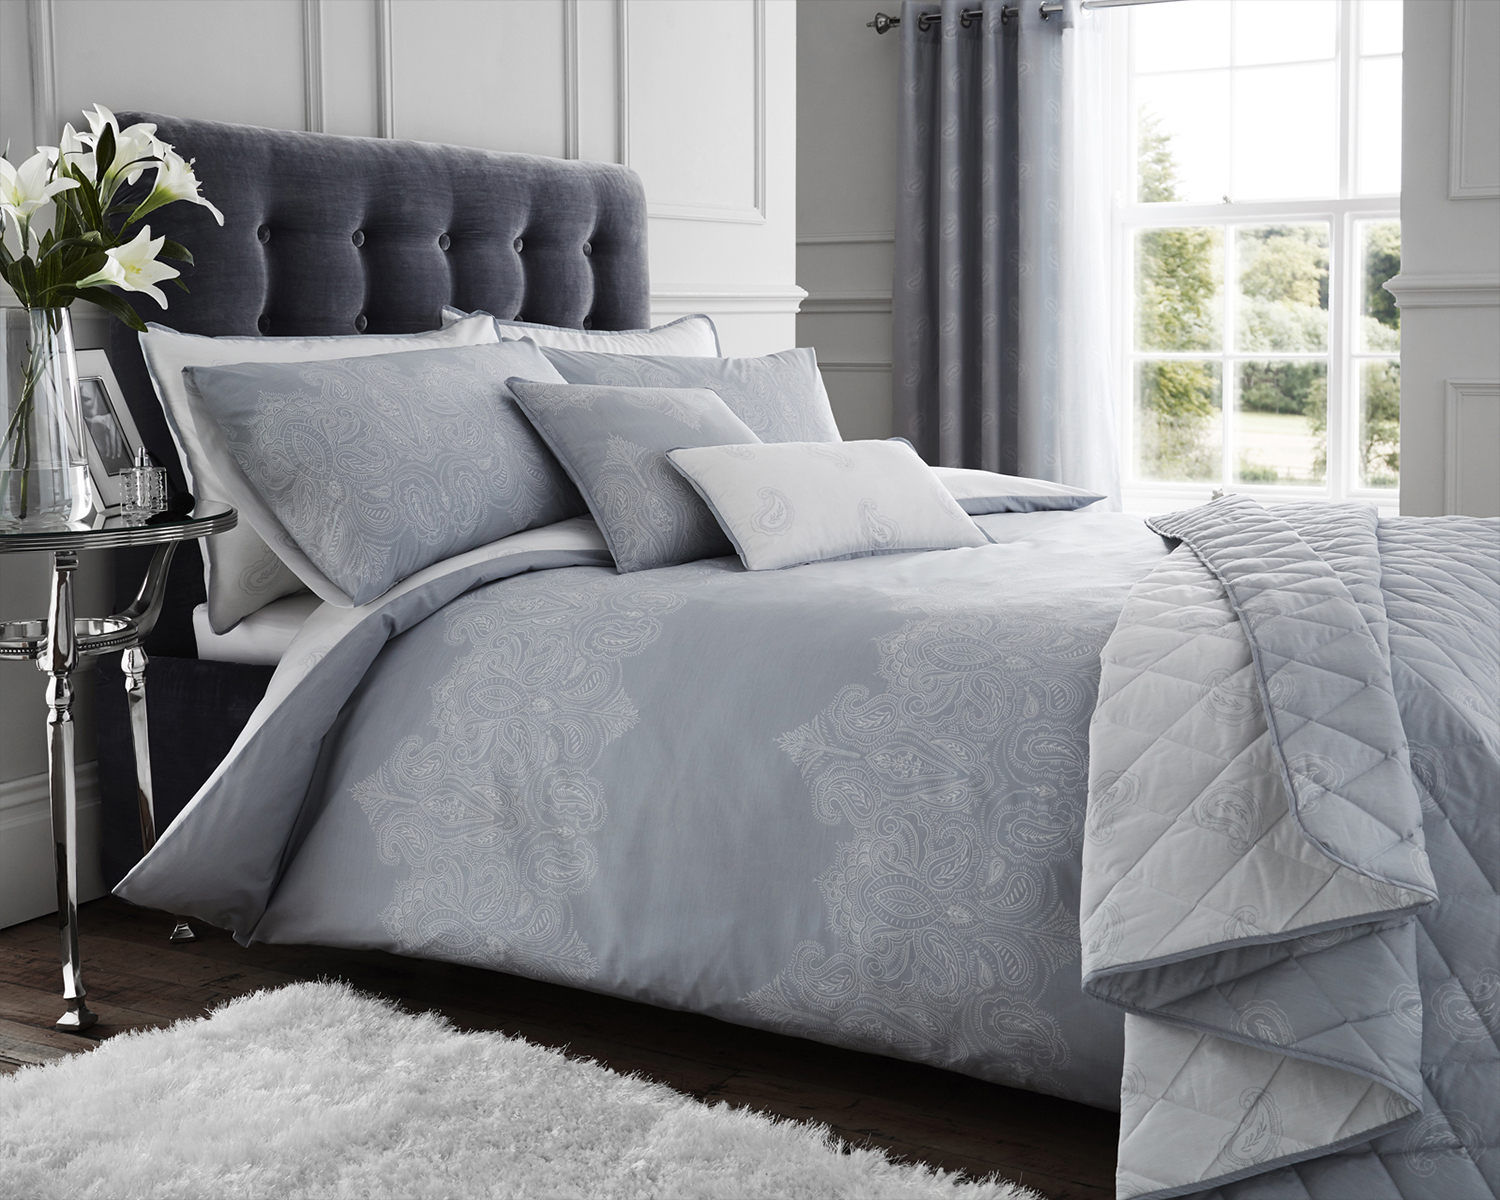 Luxury Reversable Printed Paisley Grey White Bedding Duvet Sets And Accessories Ebay